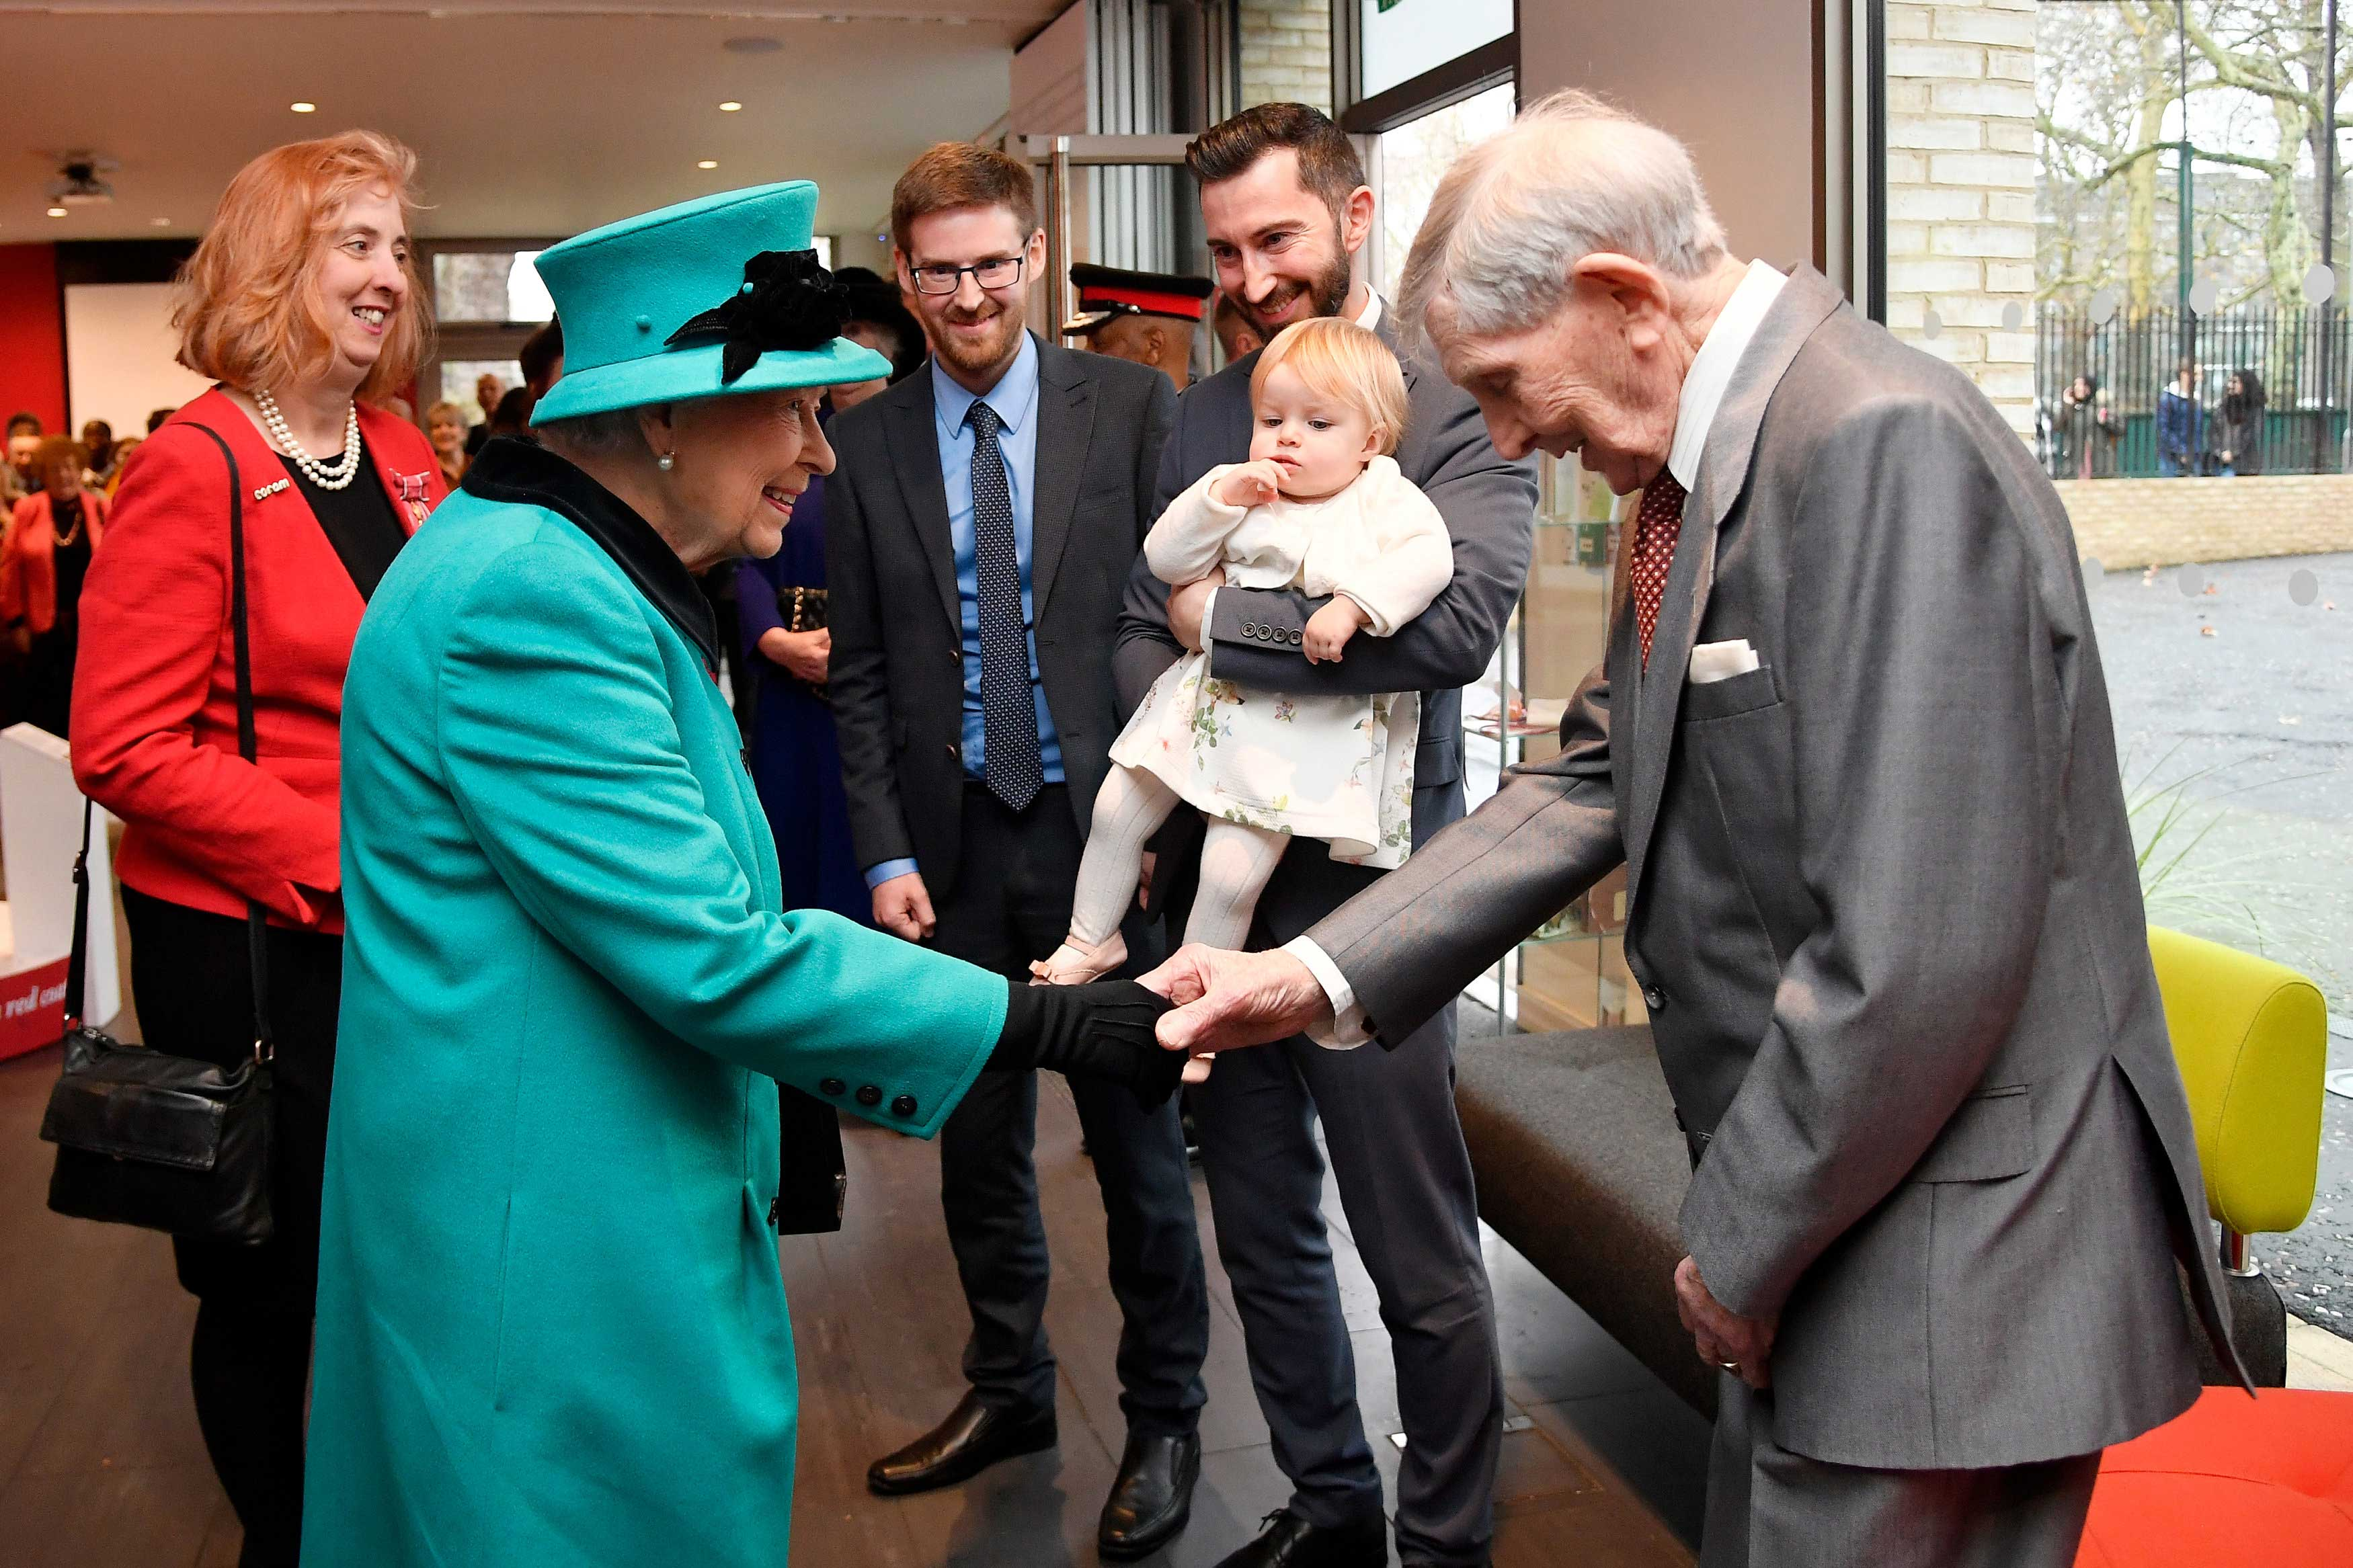 Her Majesty meets Edward and Mia at the opening of The Queen Elizabeth II Centre